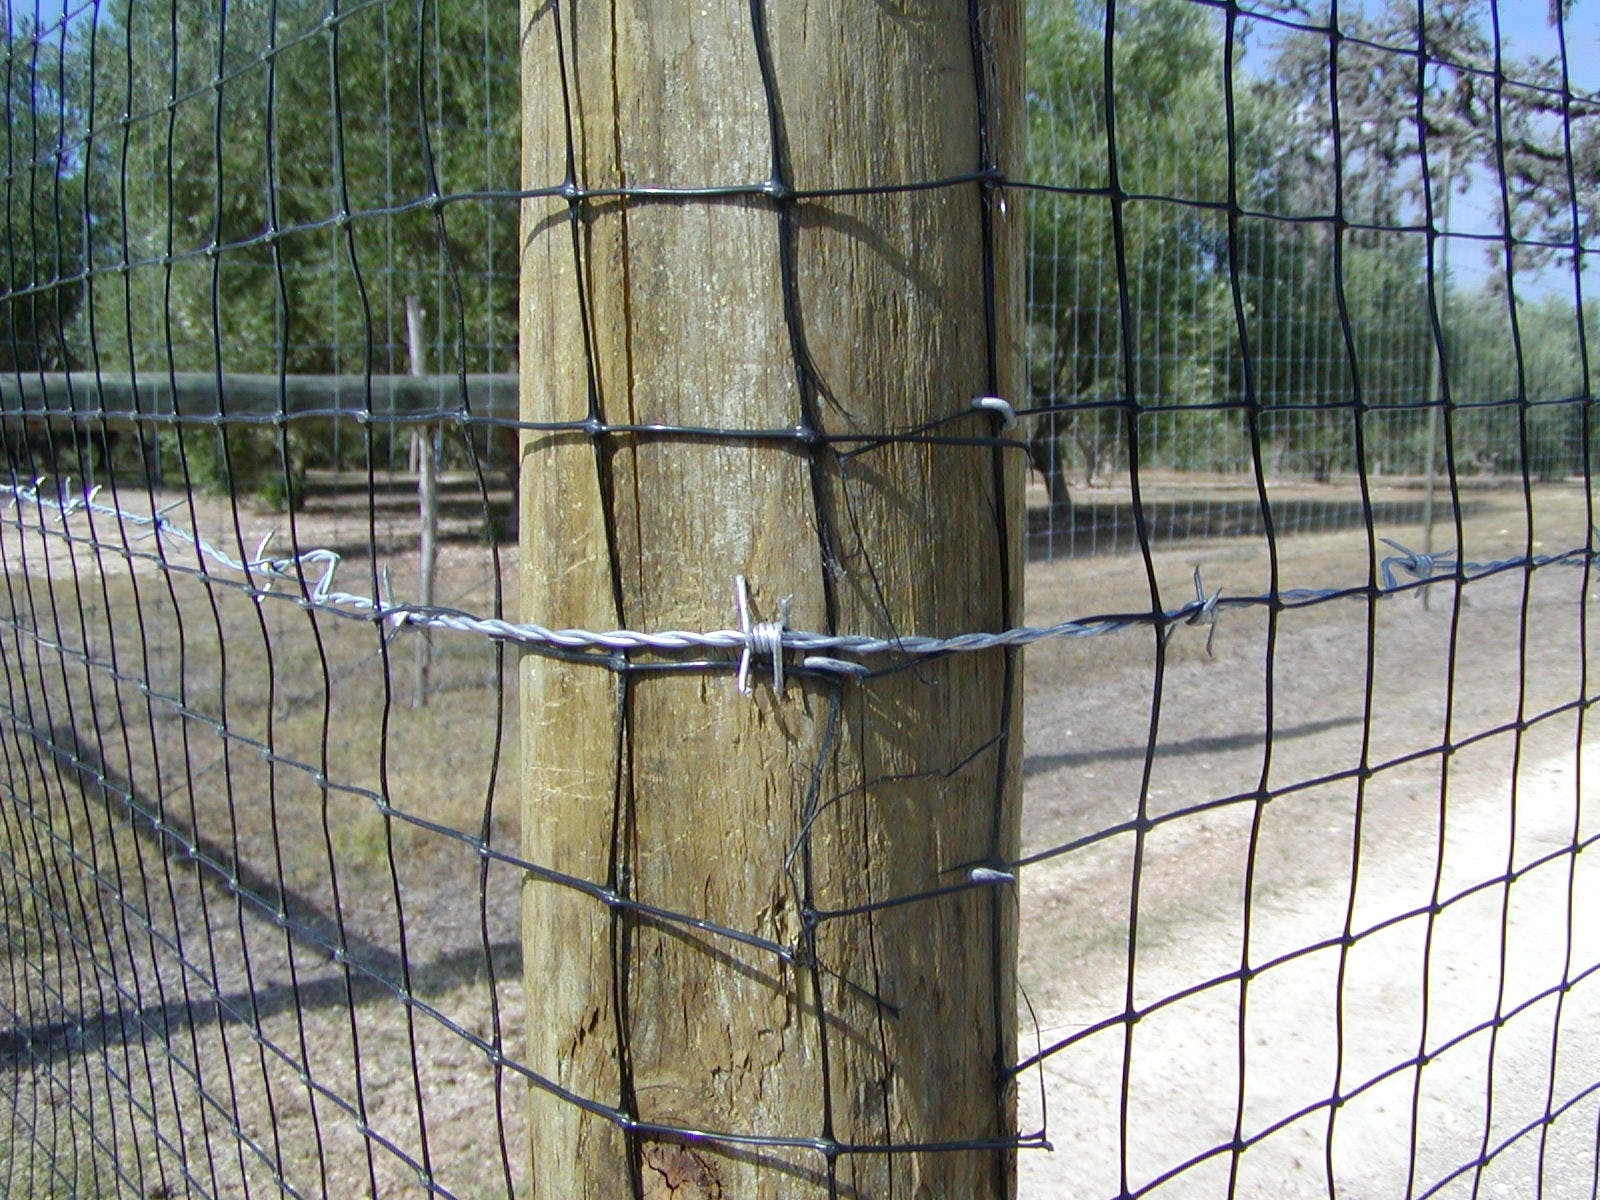 Black plastic deer or livestock fencing - sold by Producer Supply Co.